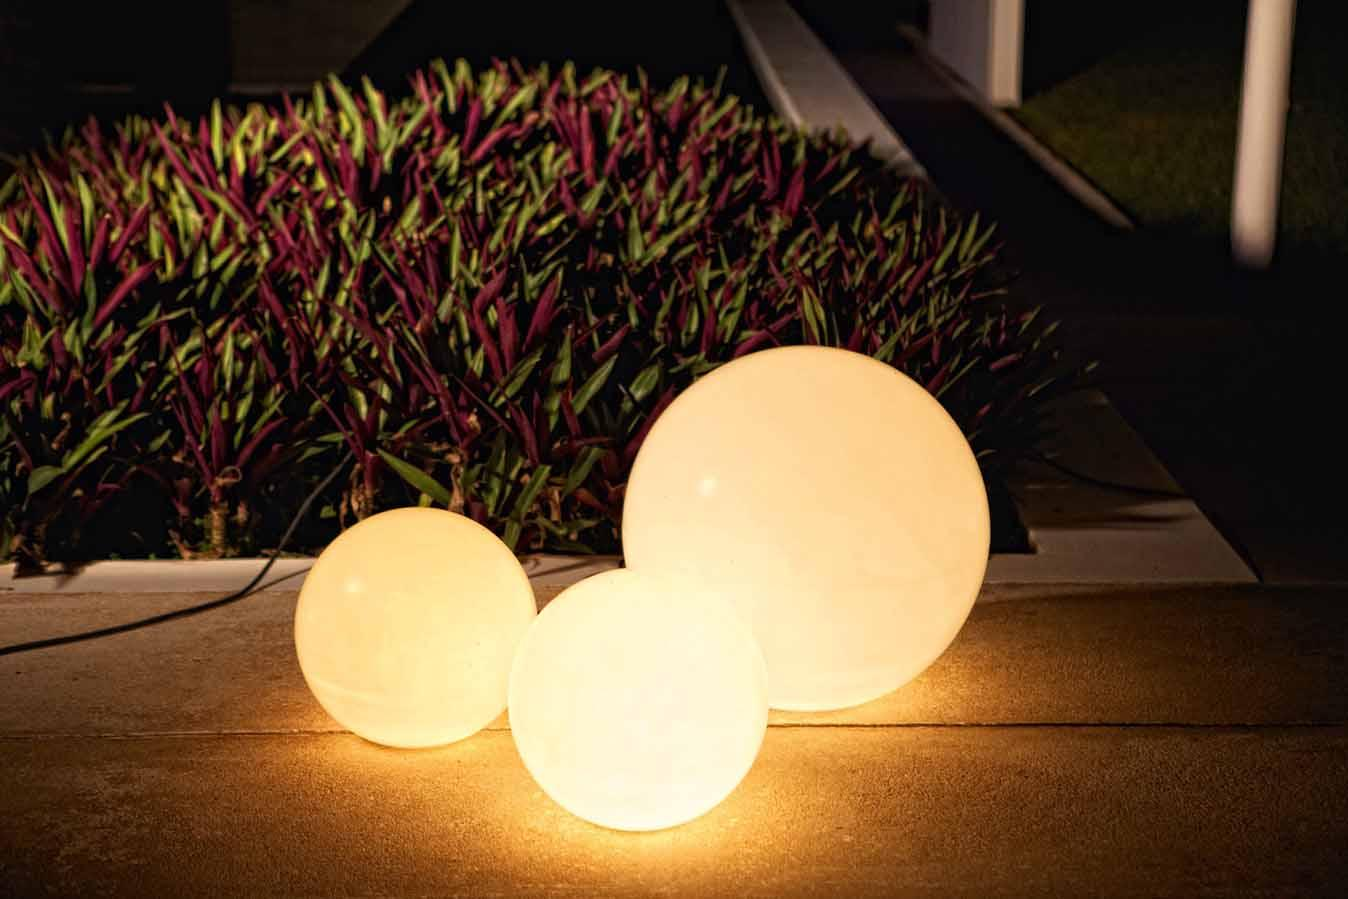 Globe outdoor lights provides an aesthetic look to the home globe outdoor lights provides an aesthetic look to the home aloadofball